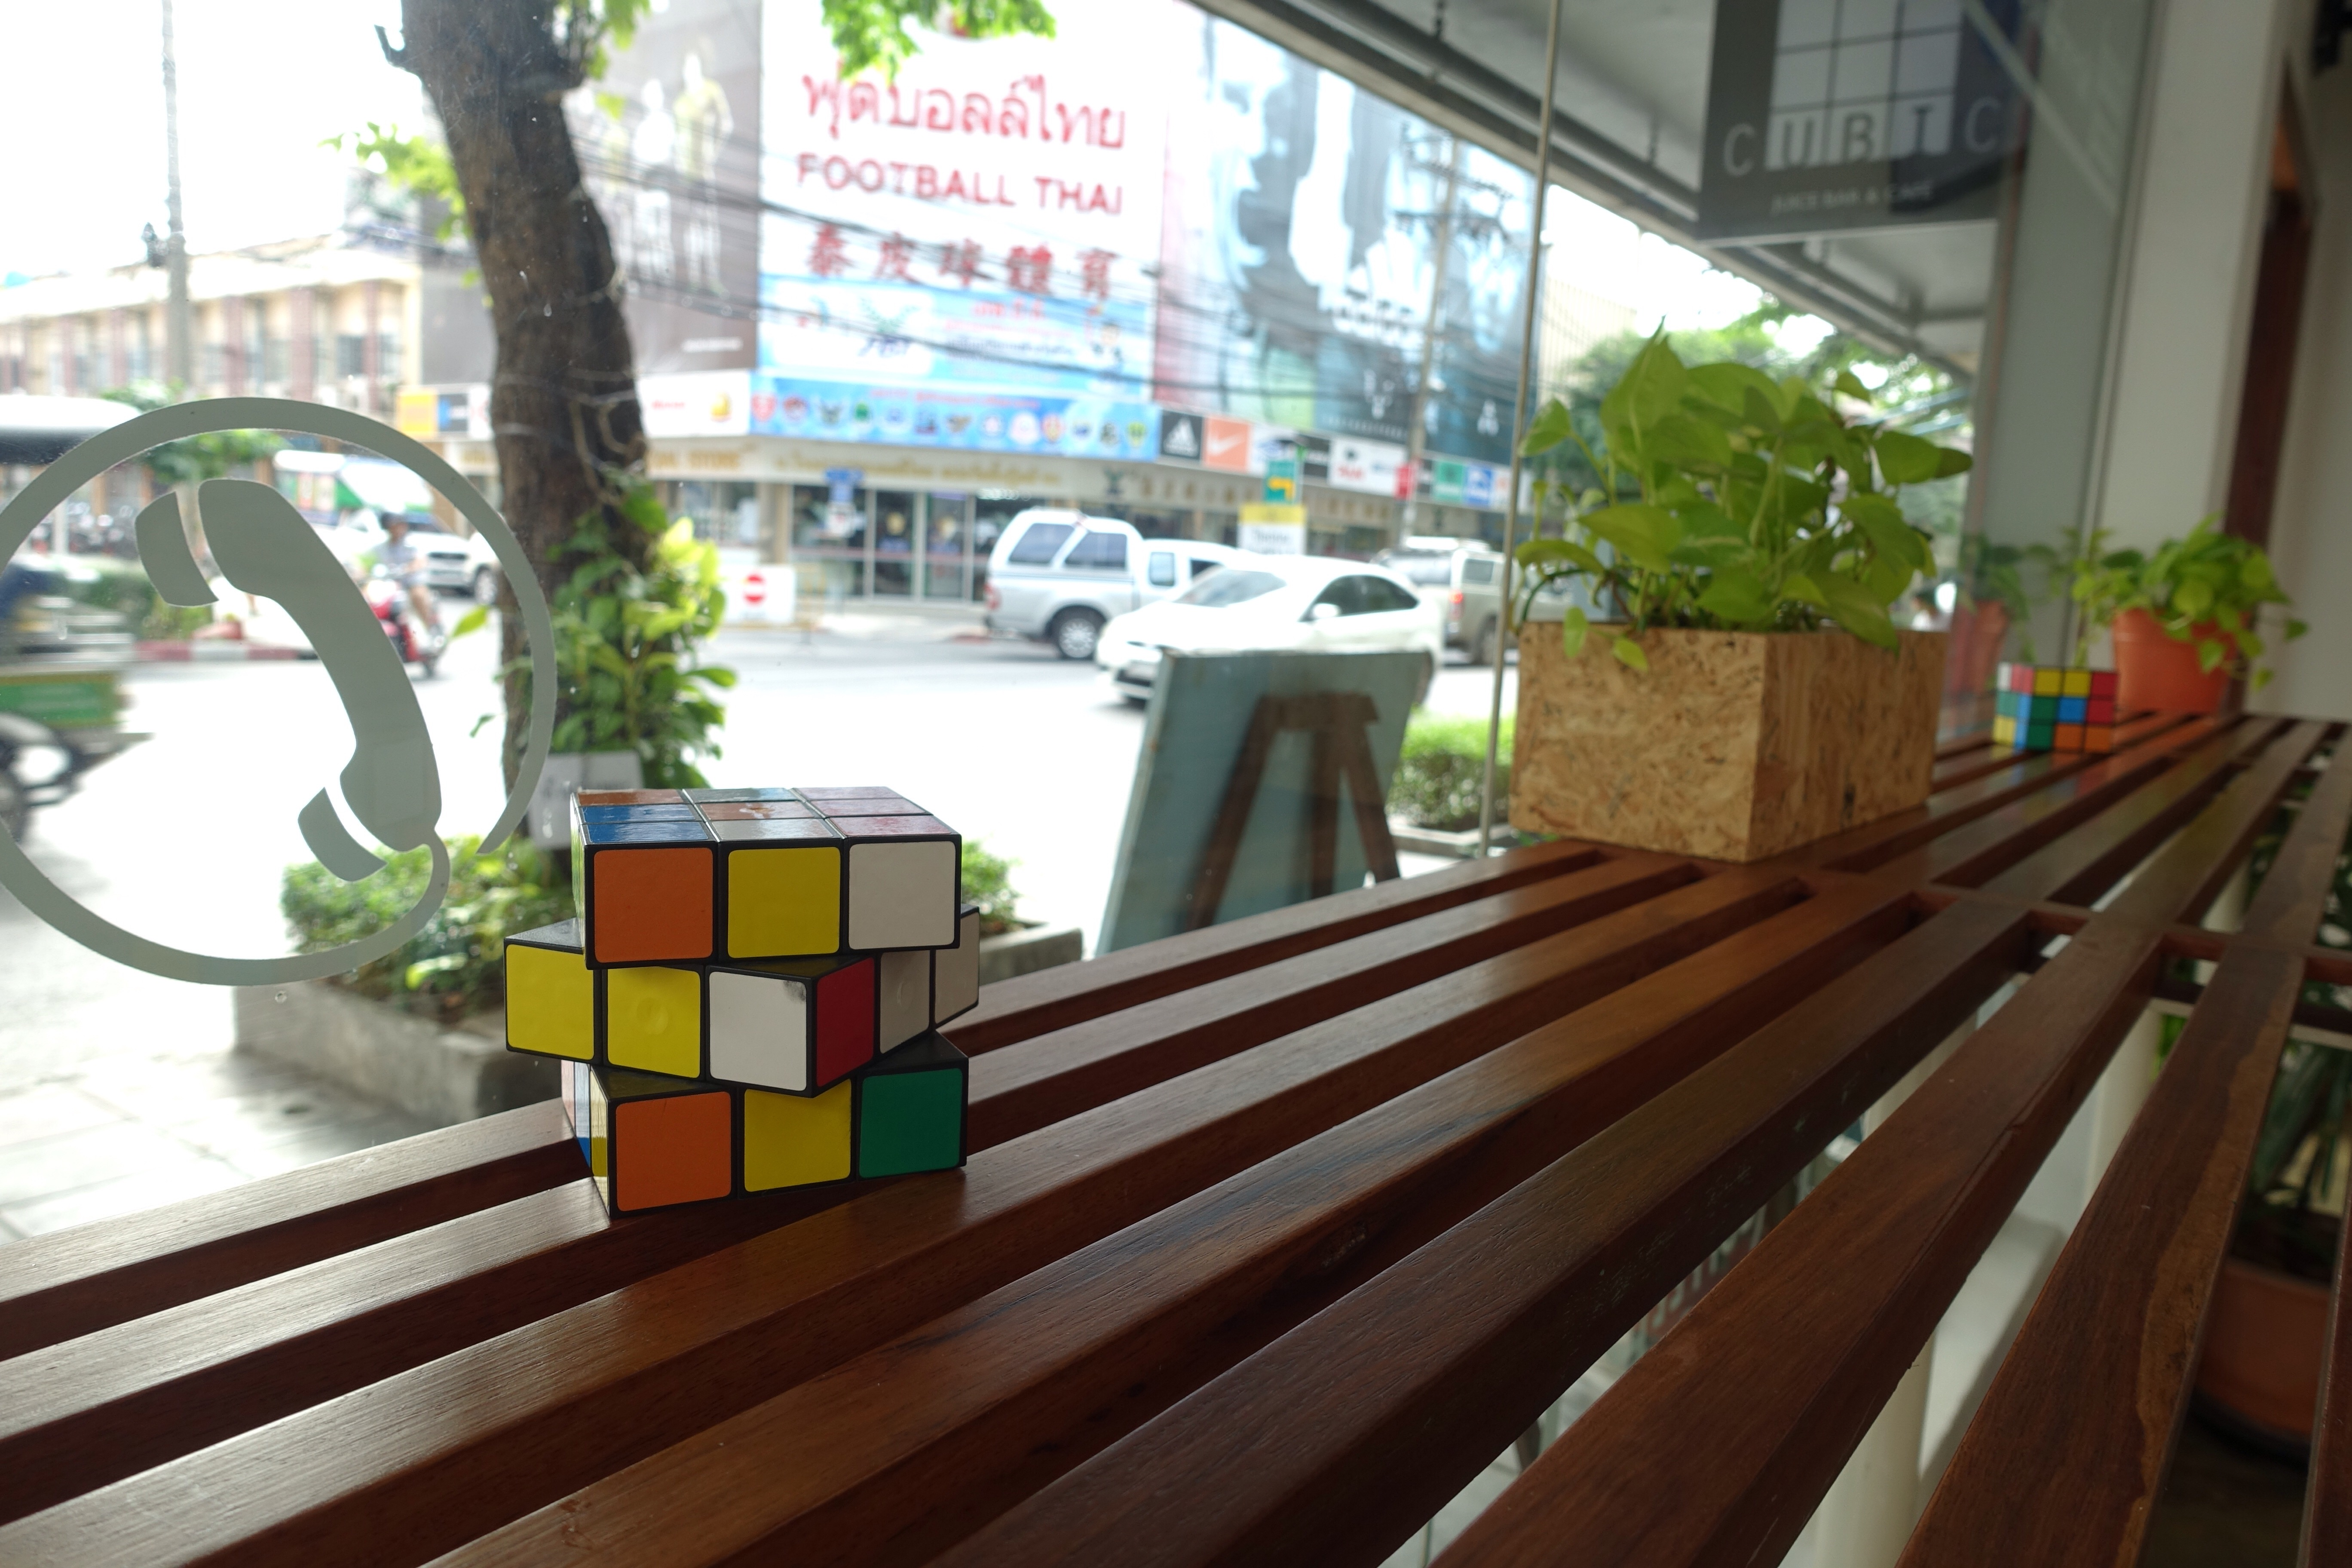 Picture of hostel with rubix cube